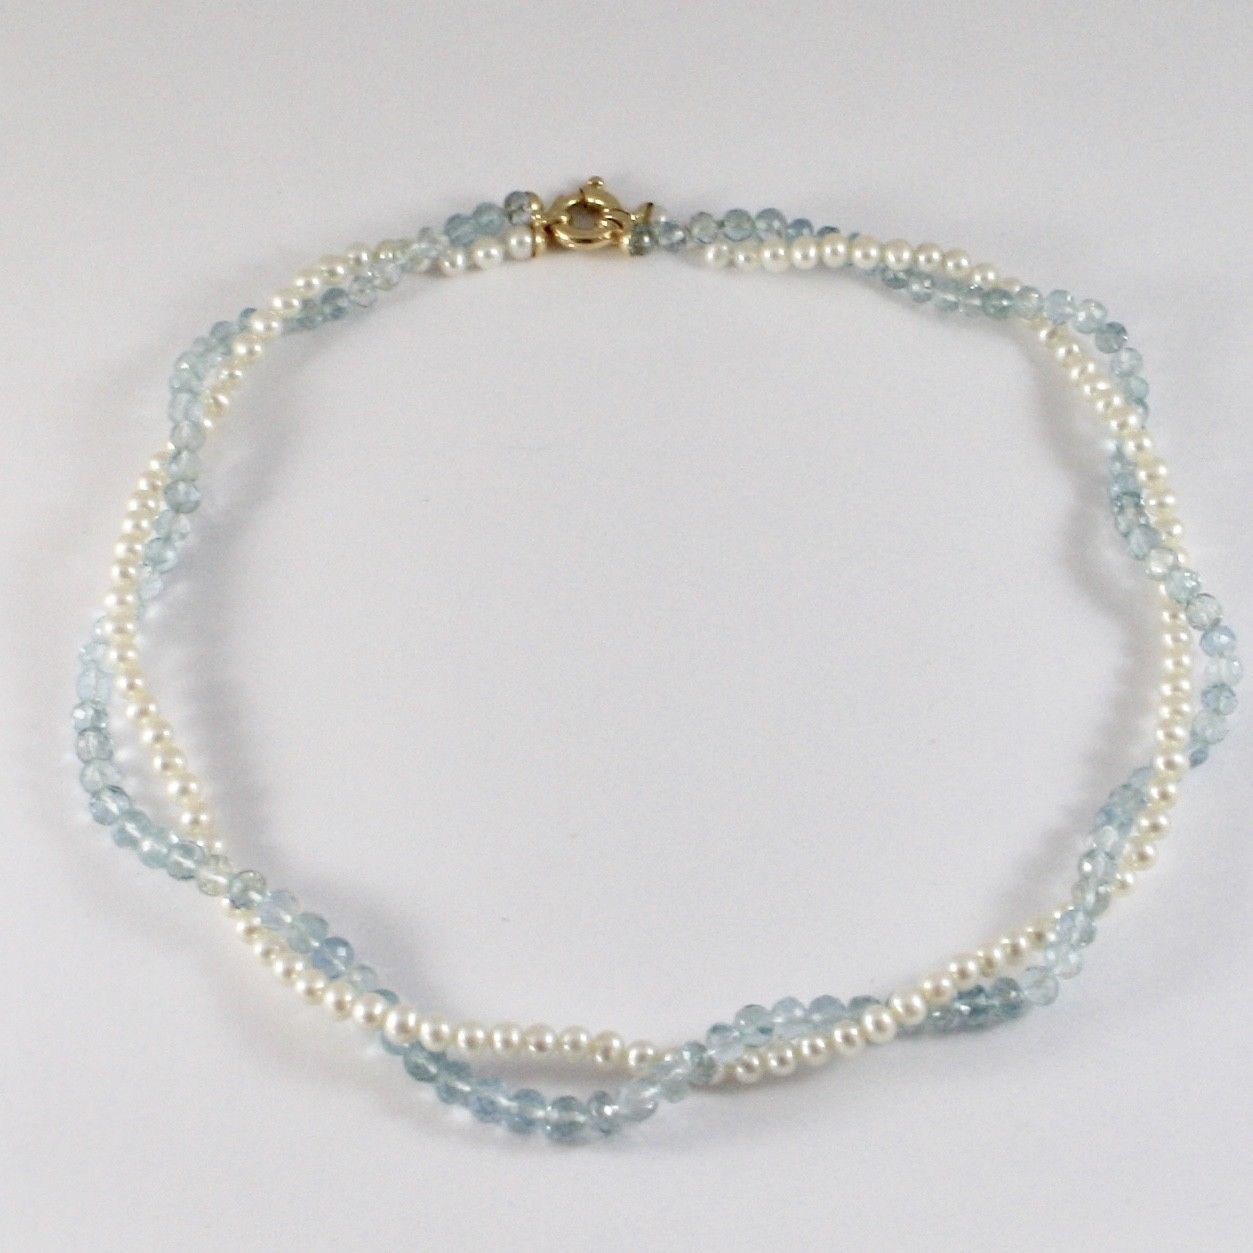 NECKLACE YELLOW GOLD 18KT WITH PEARLS WHITE AND AQUAMARINE NATURAL FACETED